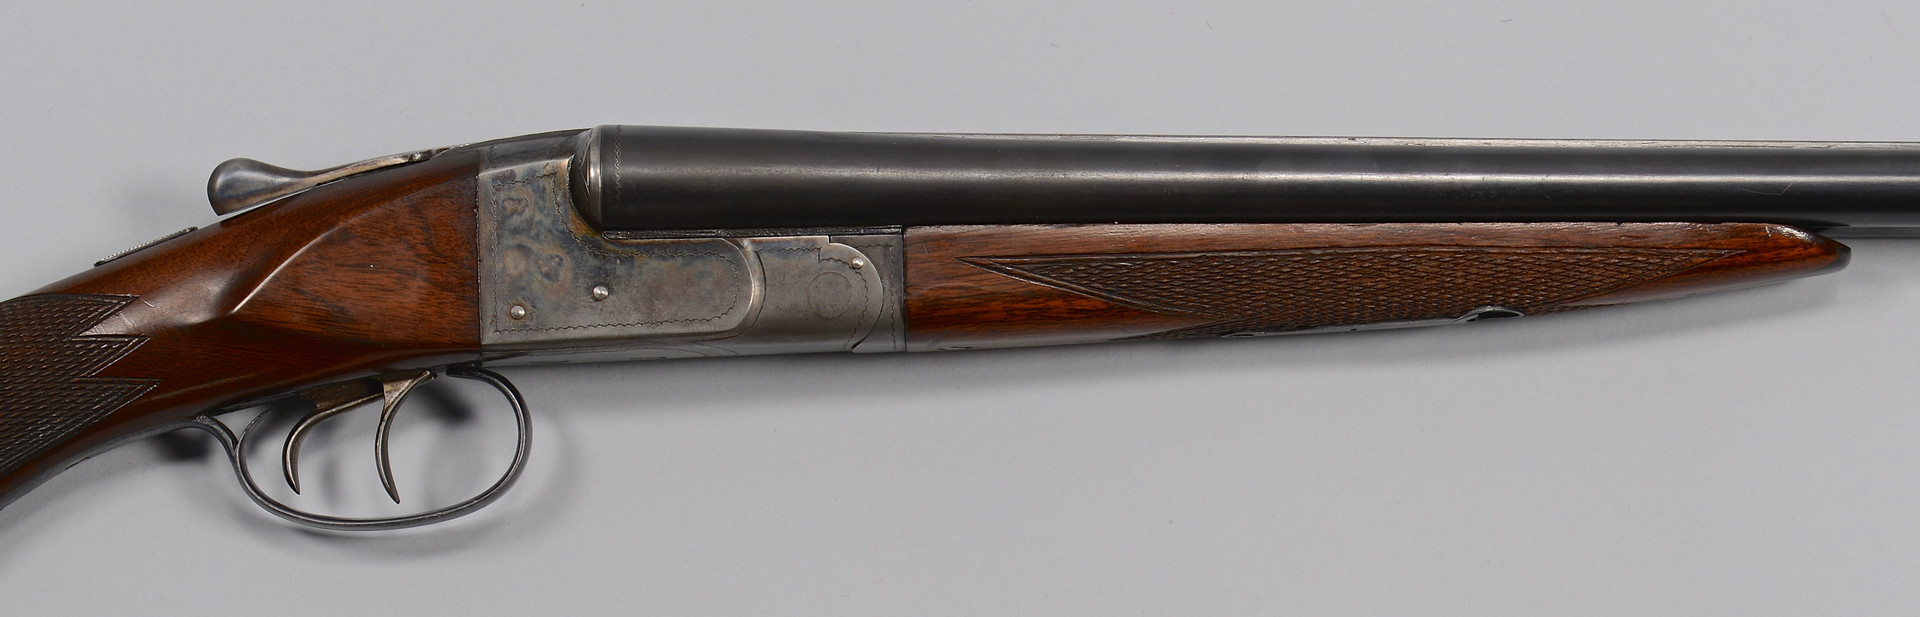 Lot 724: Double Barrel Ithaca 16 Gauge